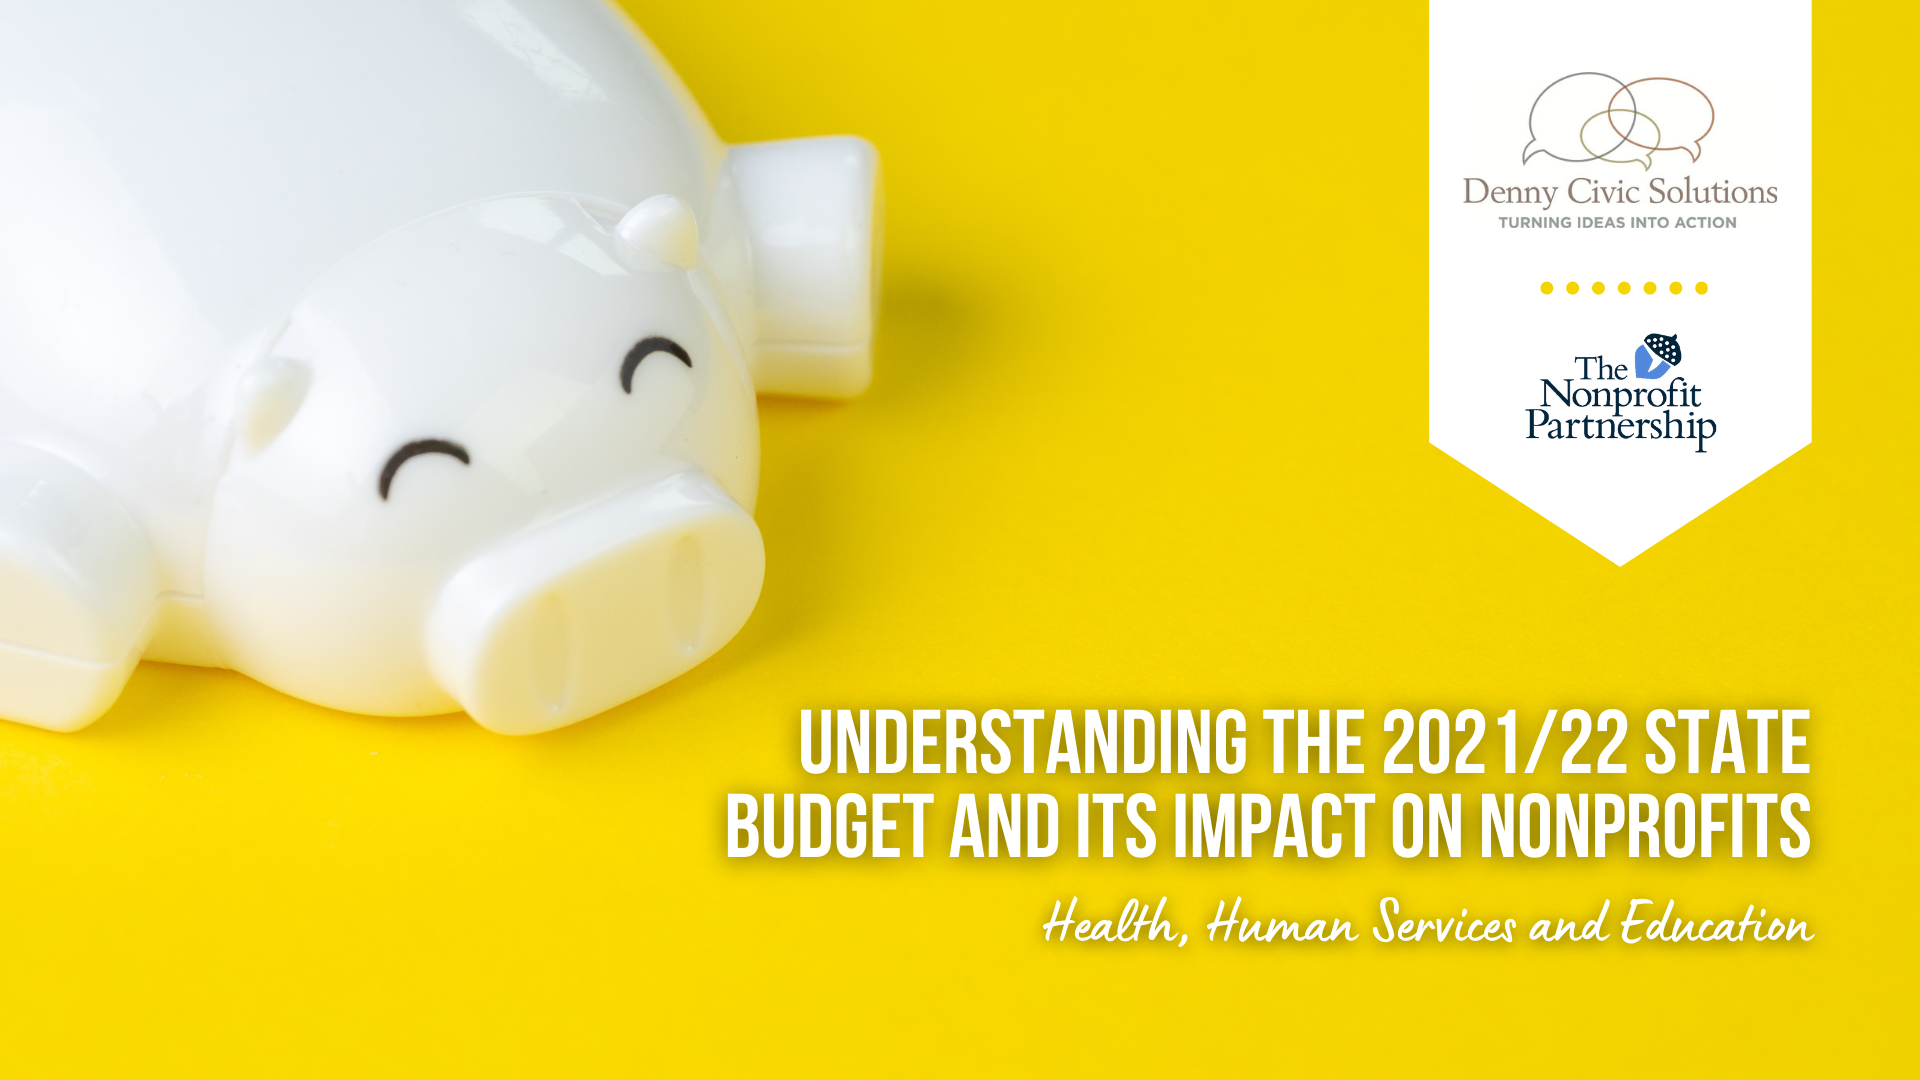 [Zoom Meeting] Understanding the 2021/22 State Budget and Its Impact on Nonprofits: Health, Human Services and Education